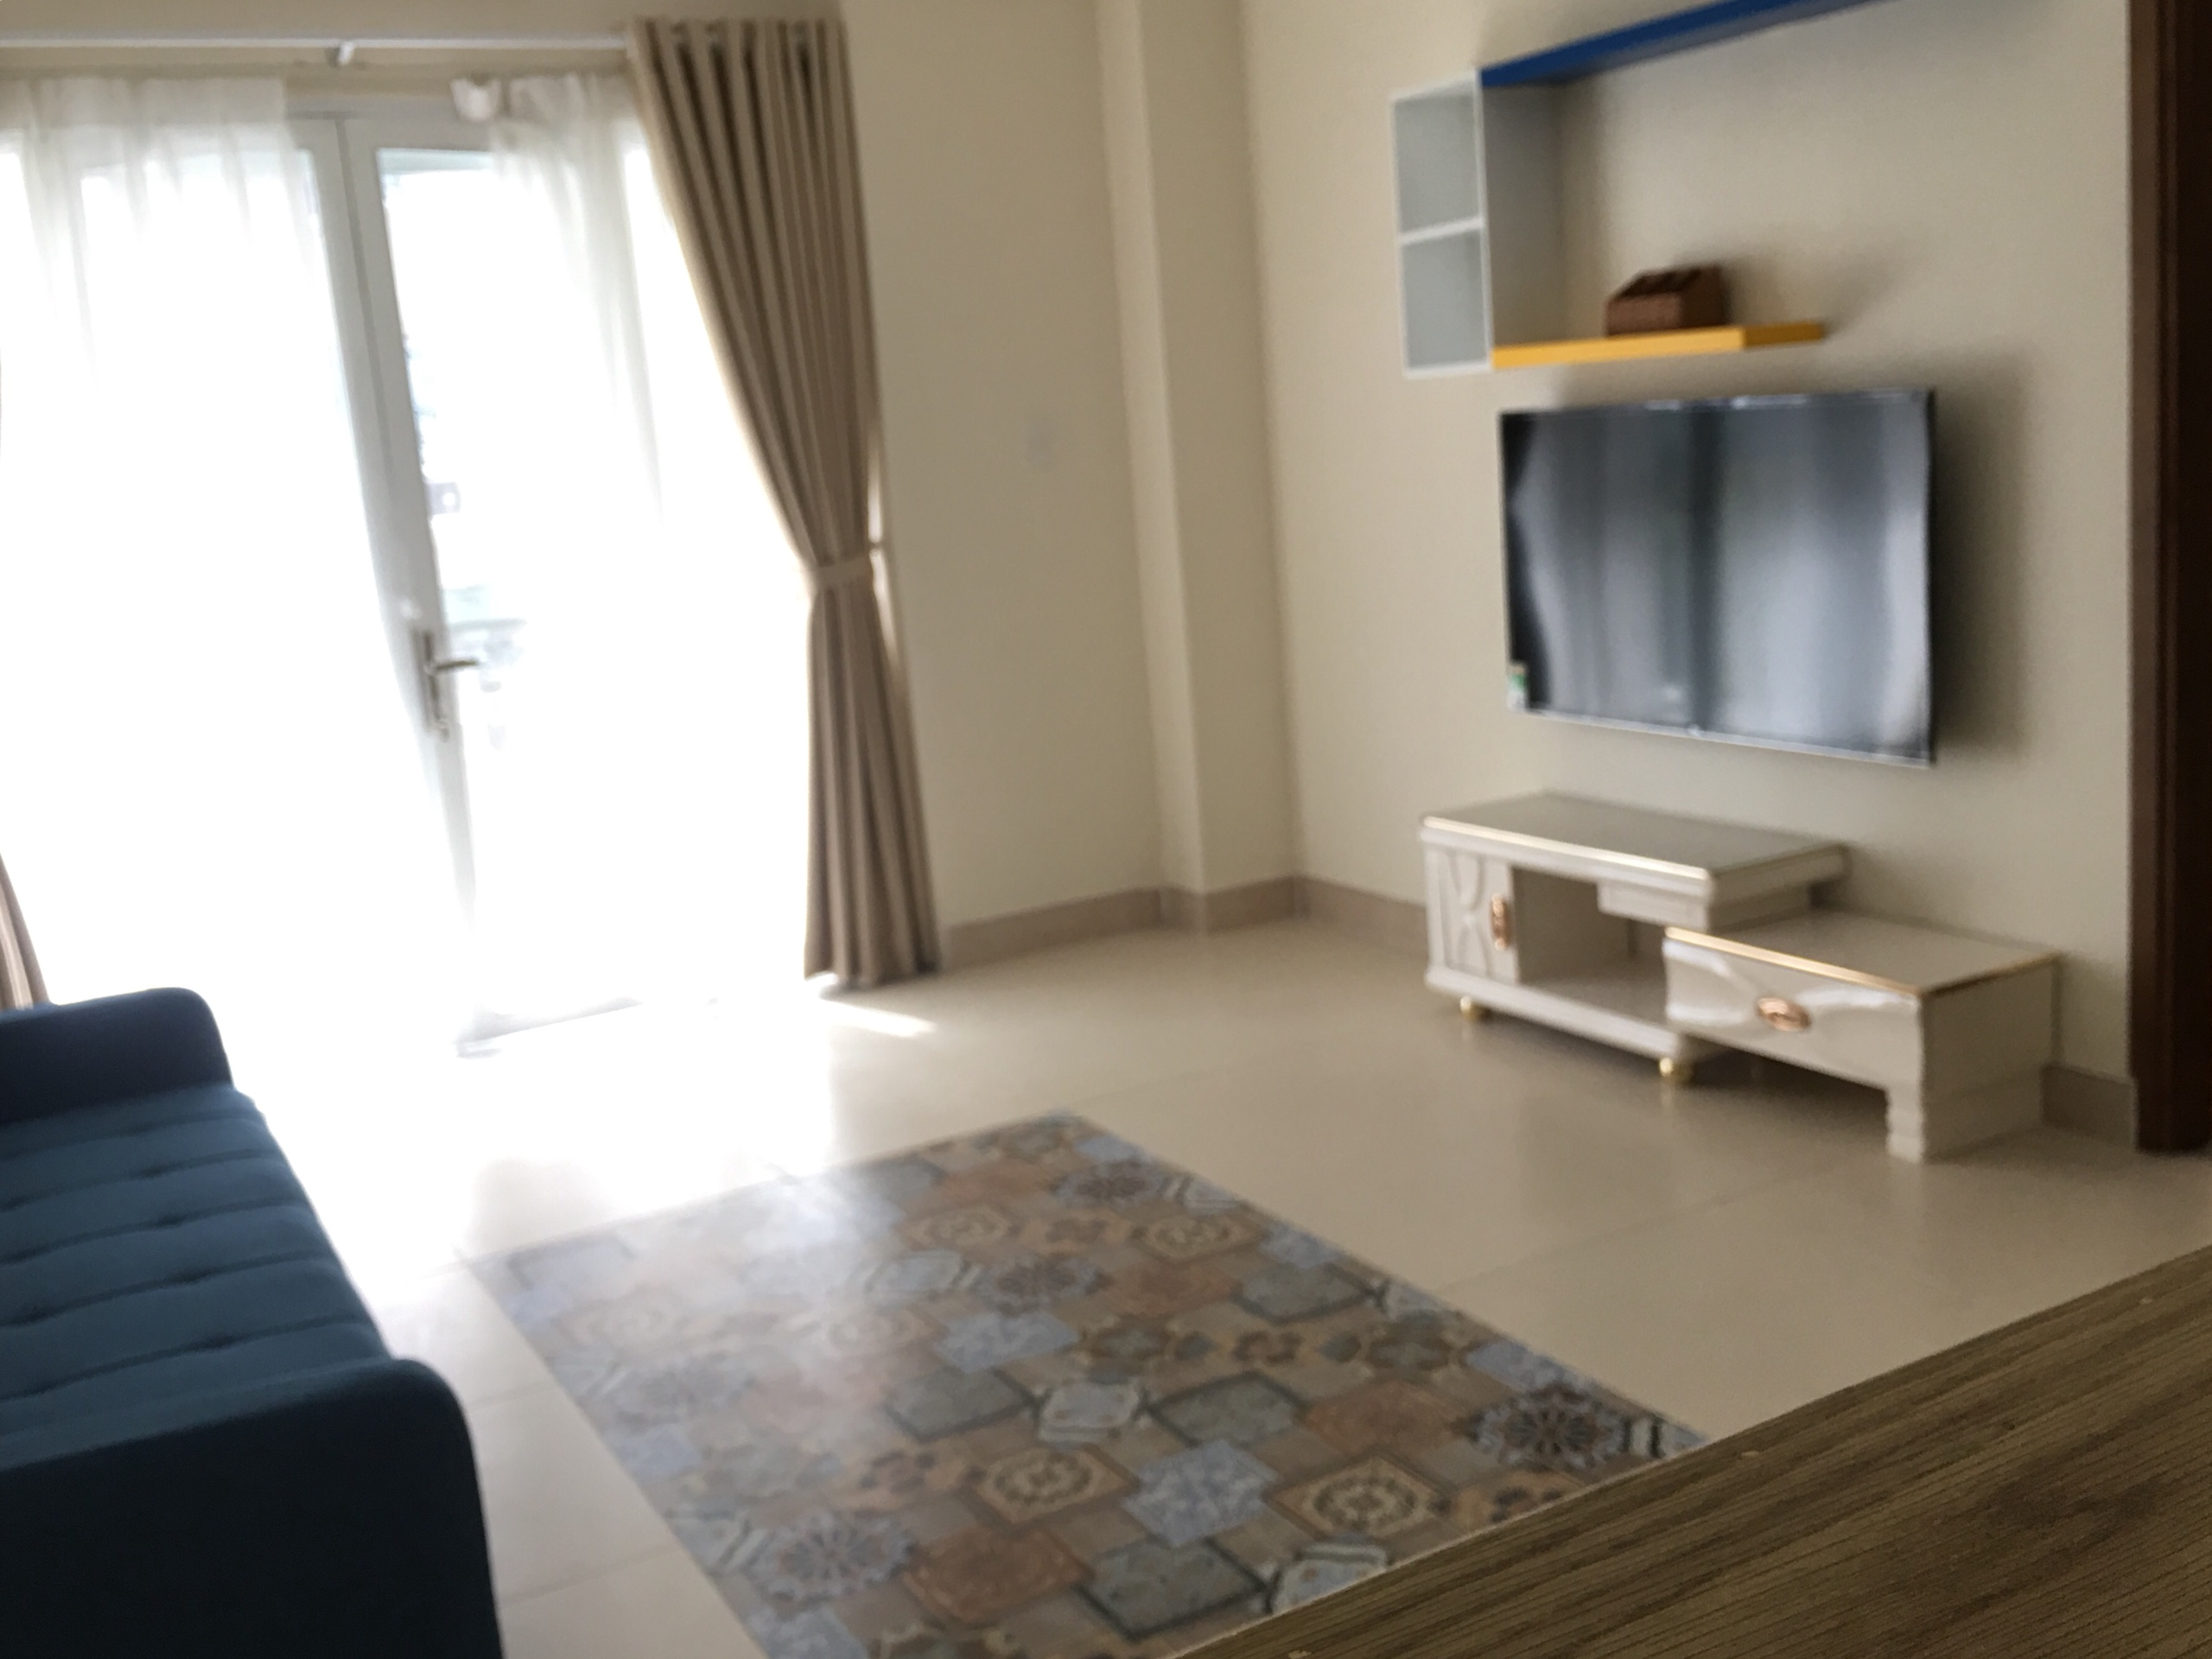 Serviced apartment for rent D299475 (8)